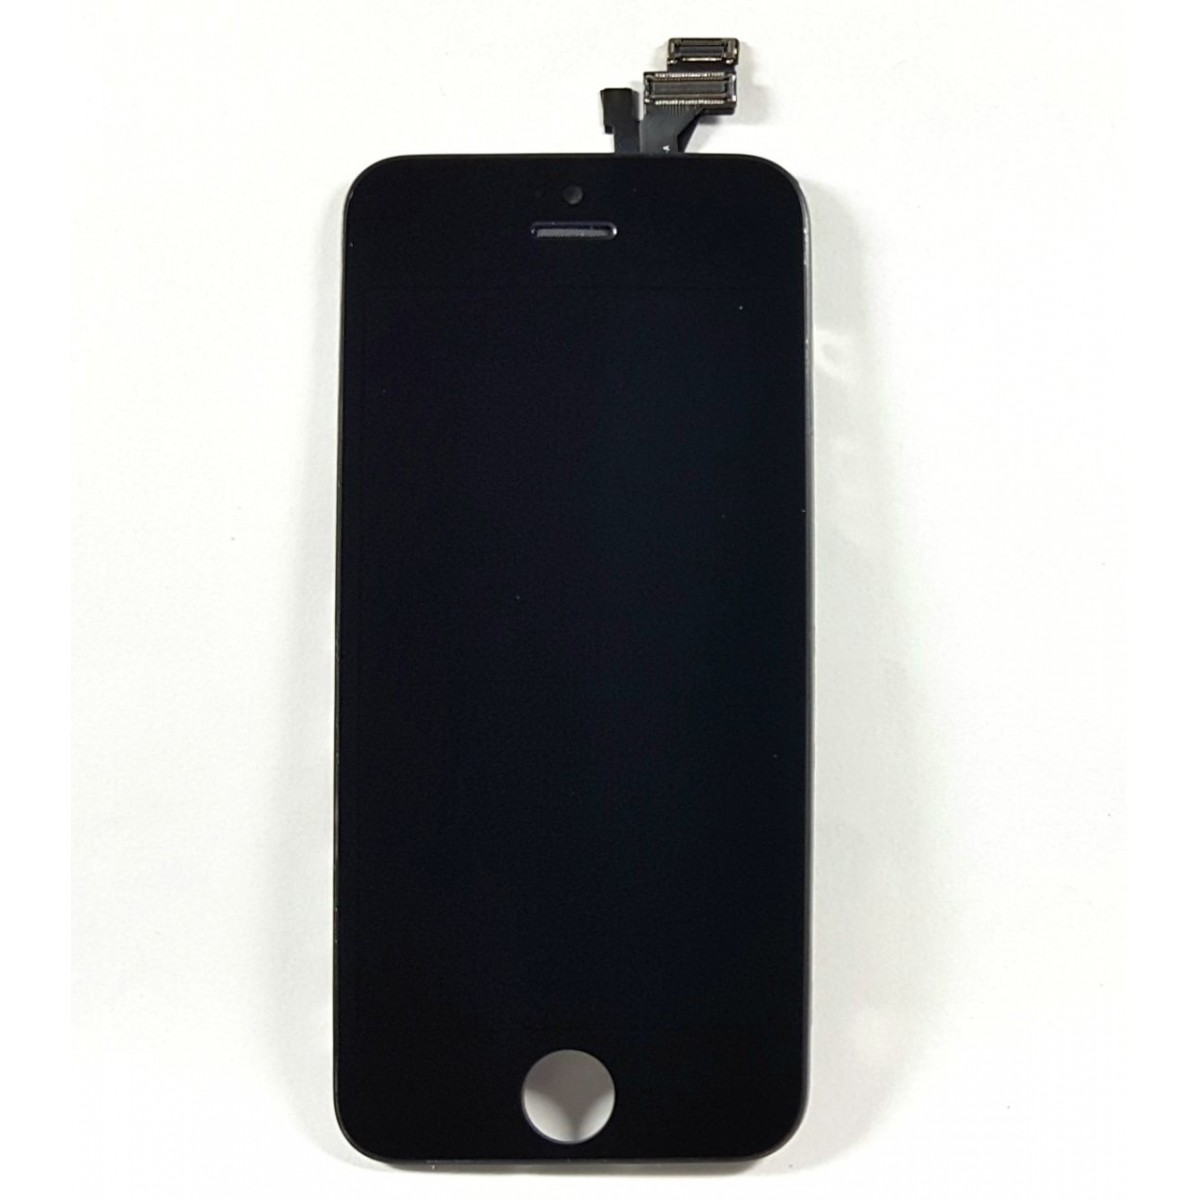 Frontal Apple Iphone 5 5g Preto Original